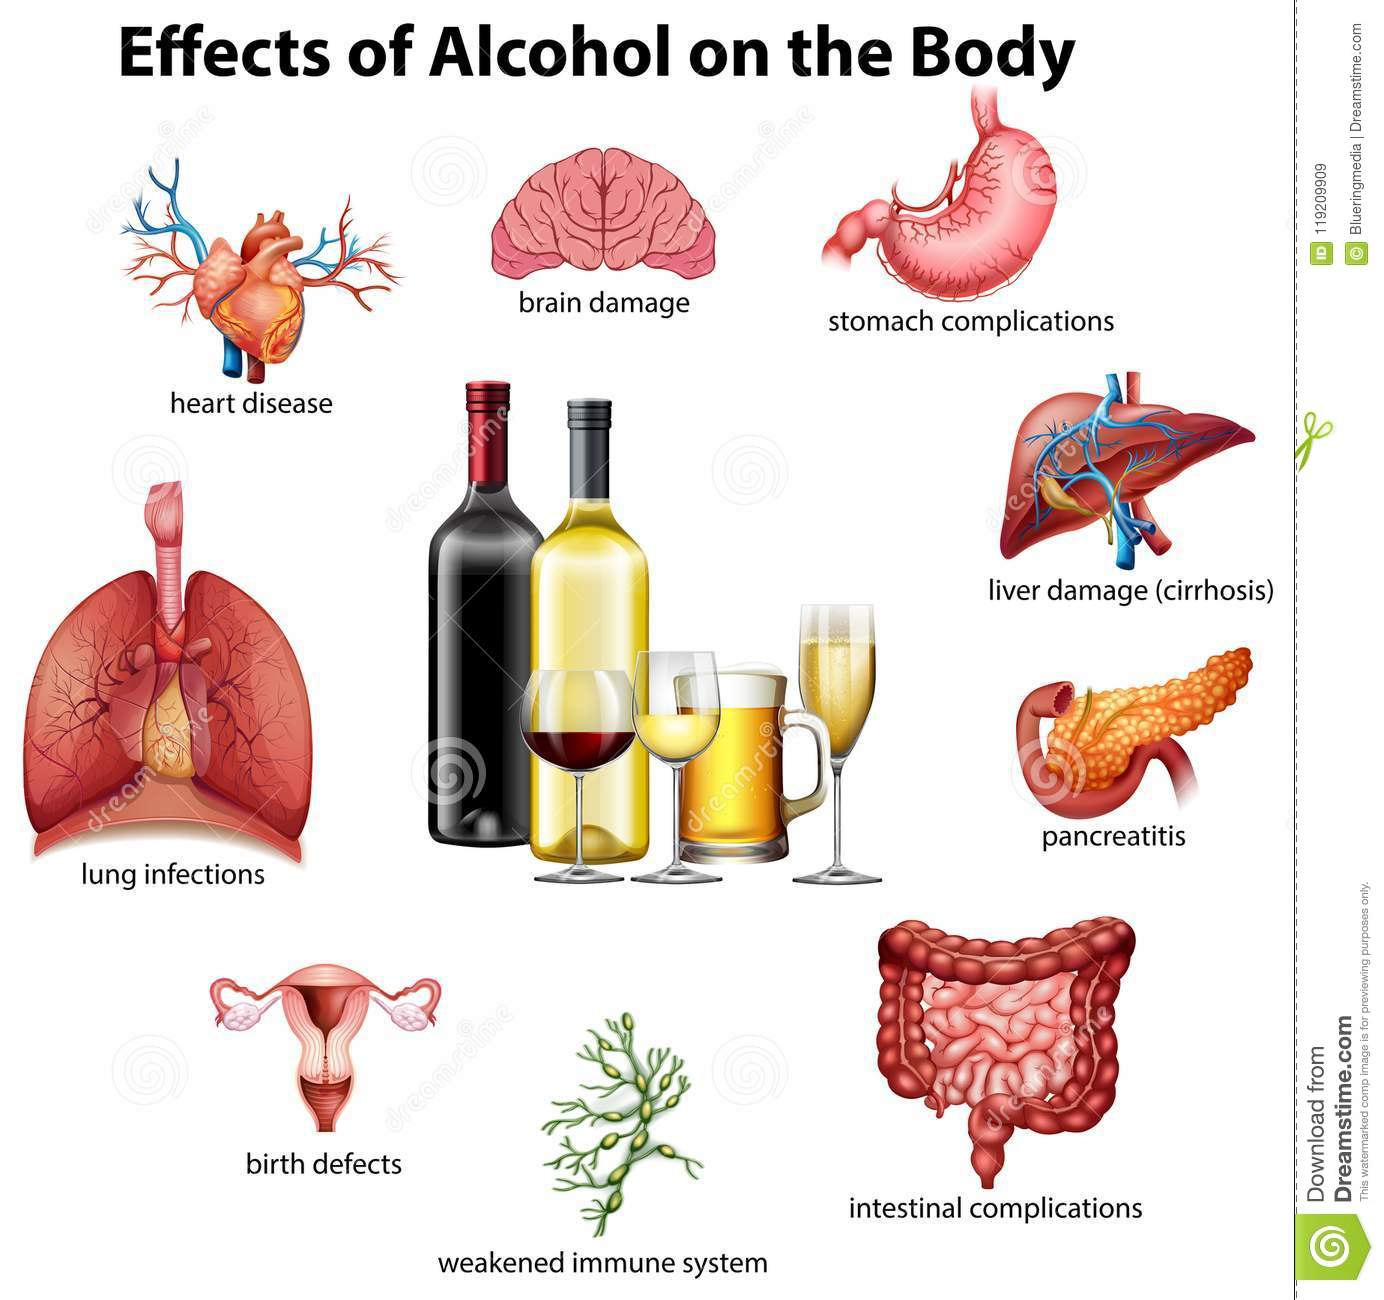 Alcohol On The 119209909 Stock Of Birth - Body Vector Illustration Effects Infections